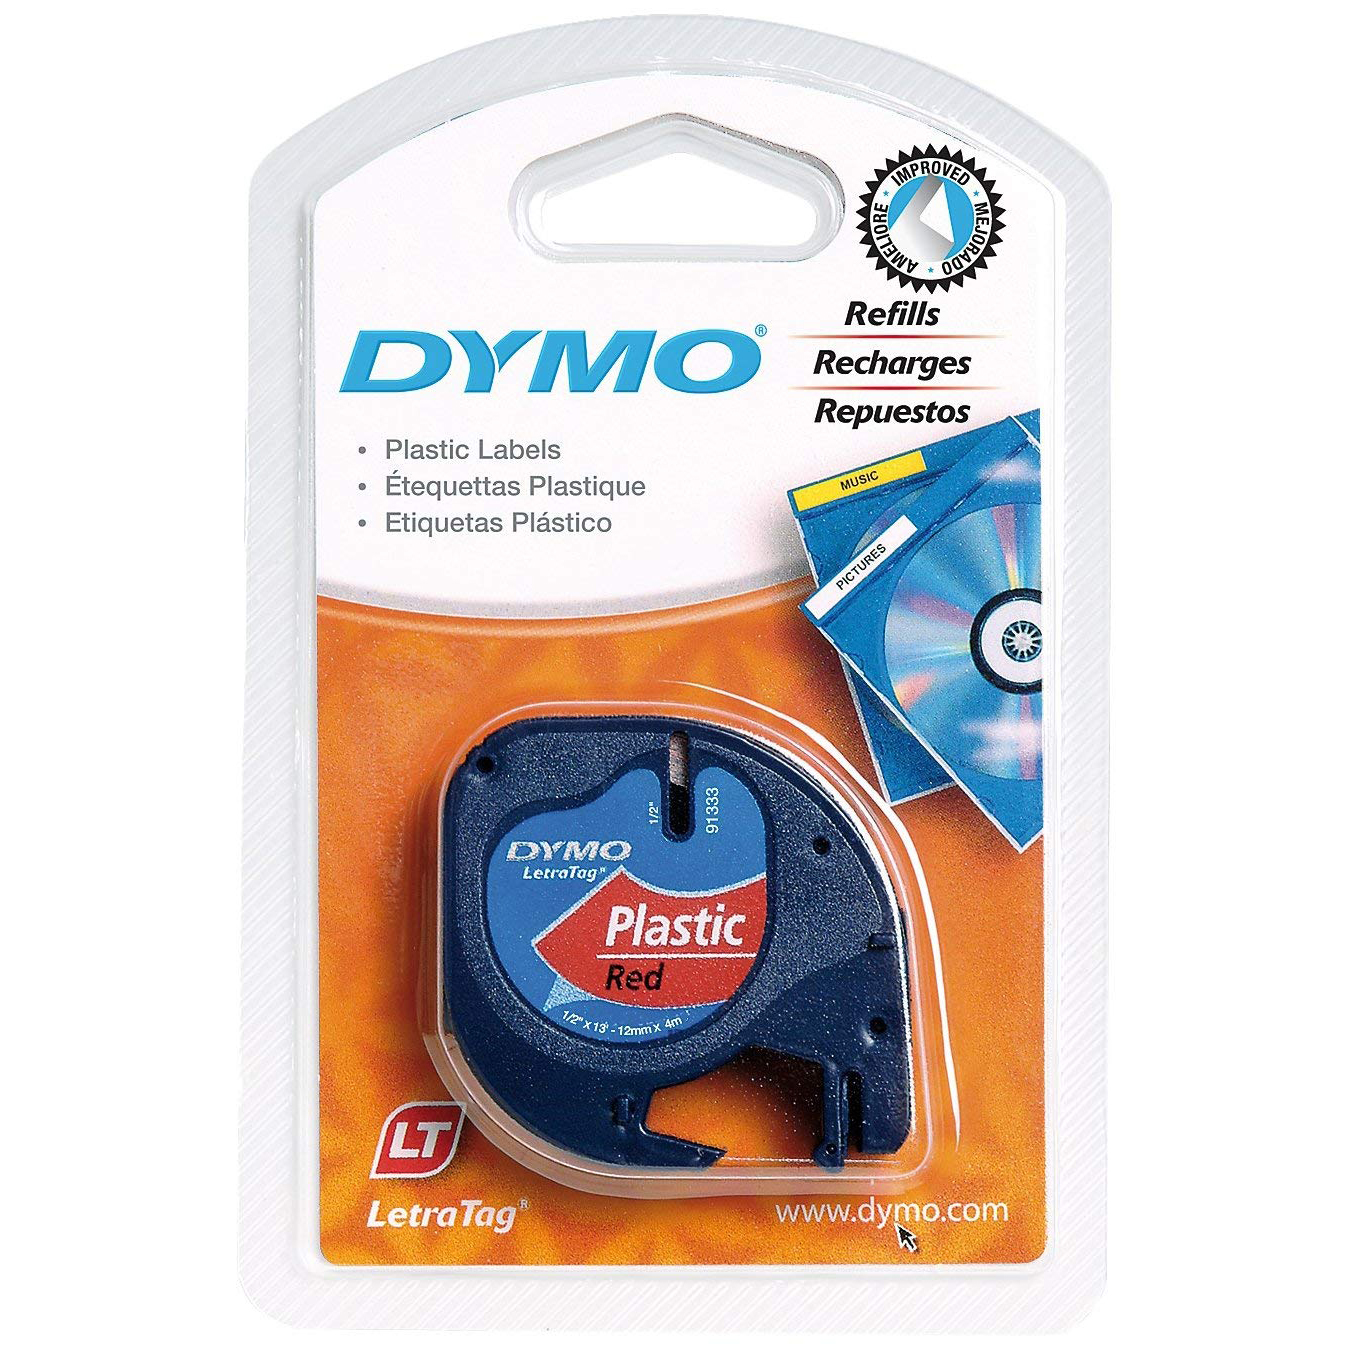 Dymo LetraTag S0721630 (91203) Plastic Label Tape 12mm x 4m - Black on Red (roll)